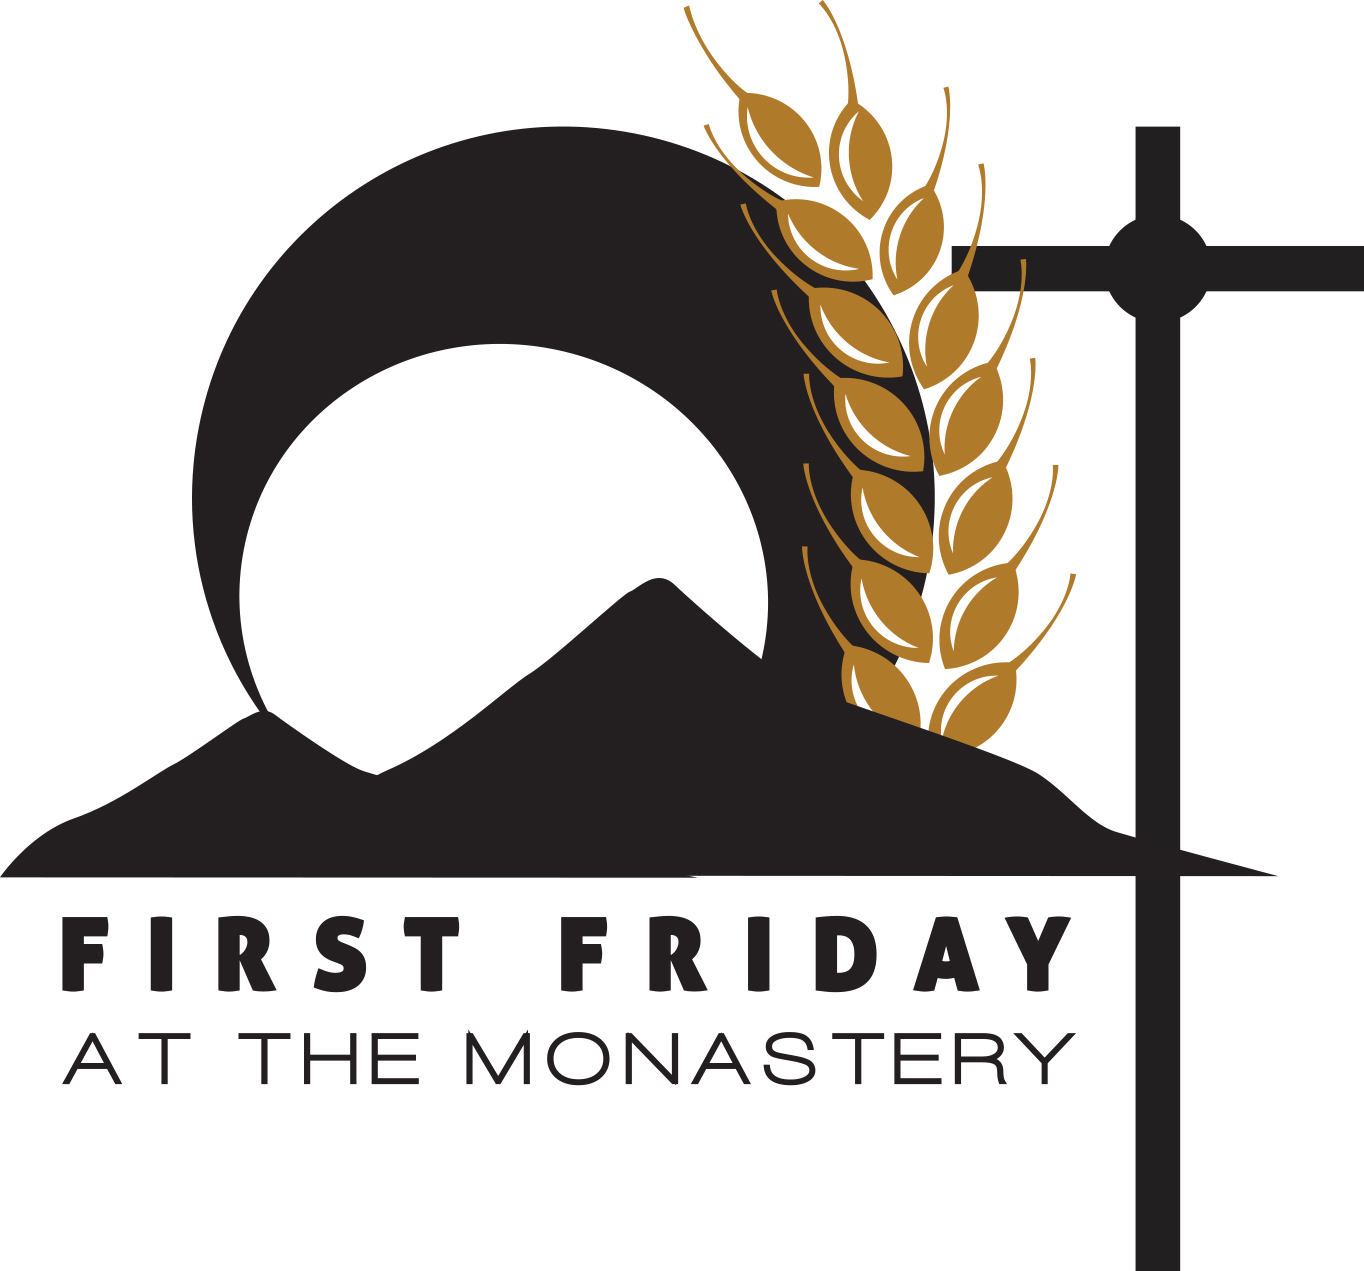 First Friday at the Monastery - FEBRUARY 5th